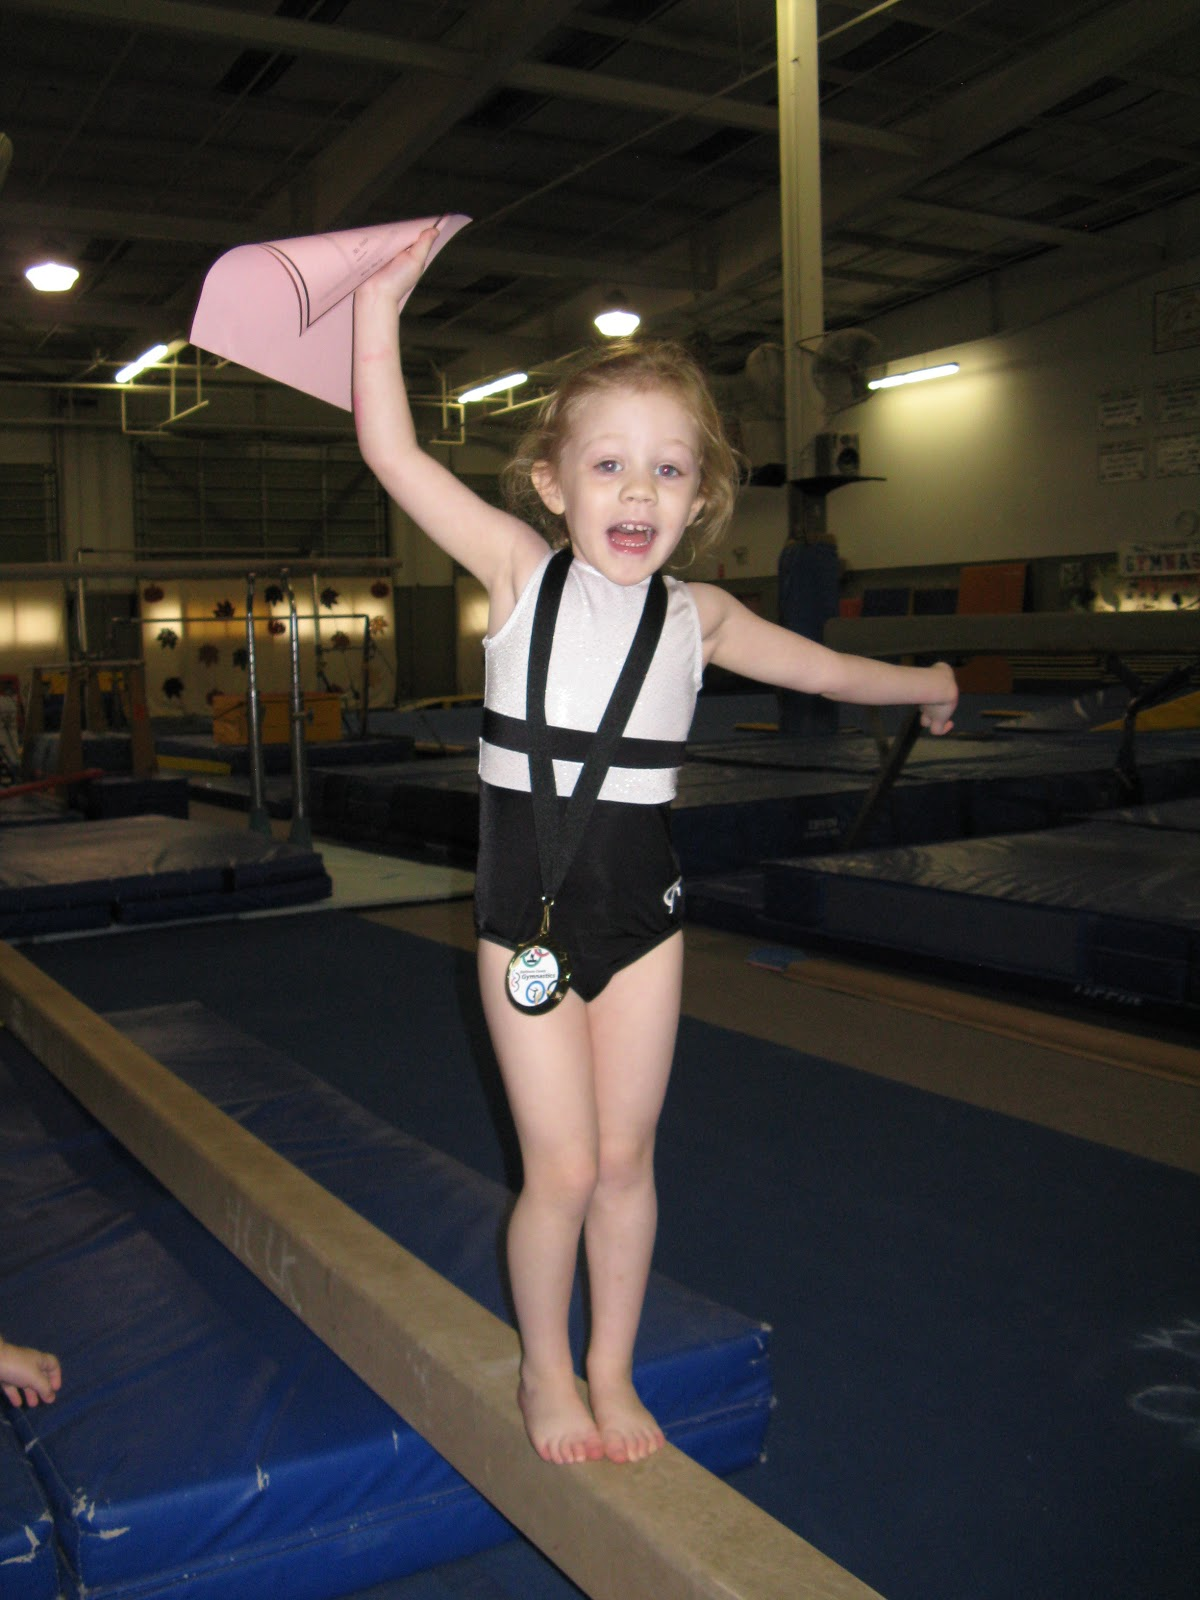 The Saxtons Our Little Gymnast